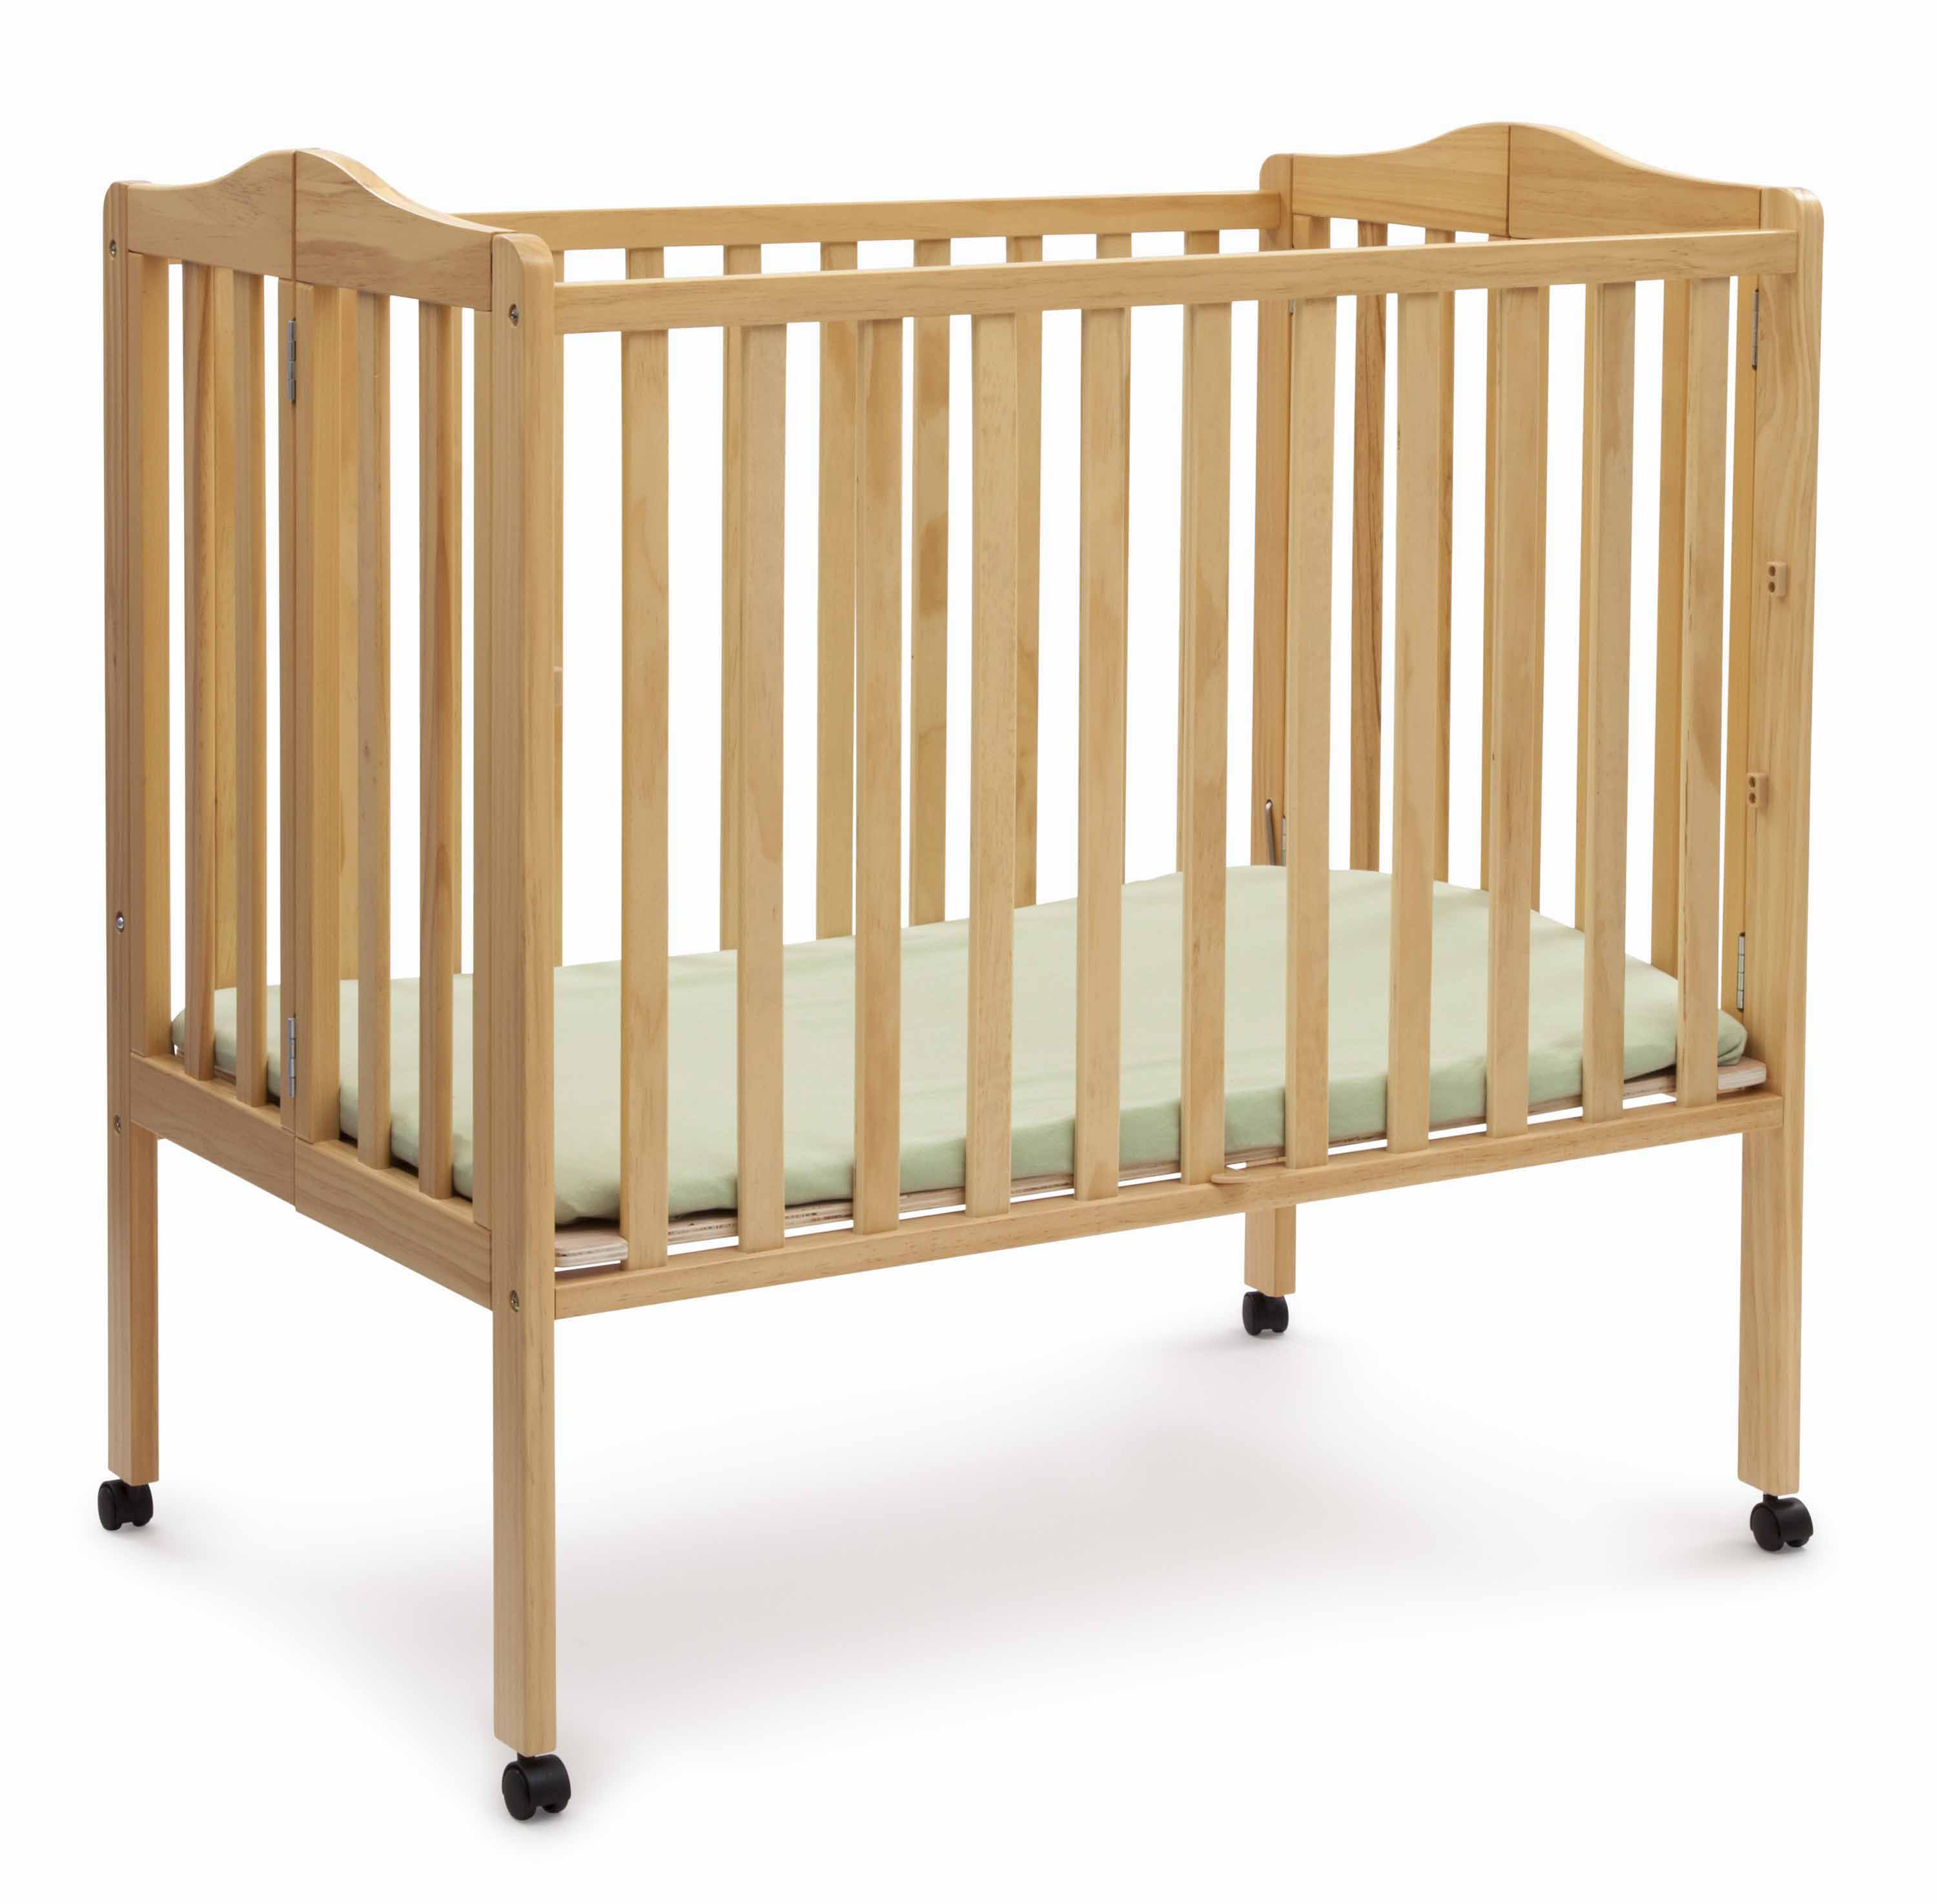 Compact Size Folding Crib With Mattress and Sheets